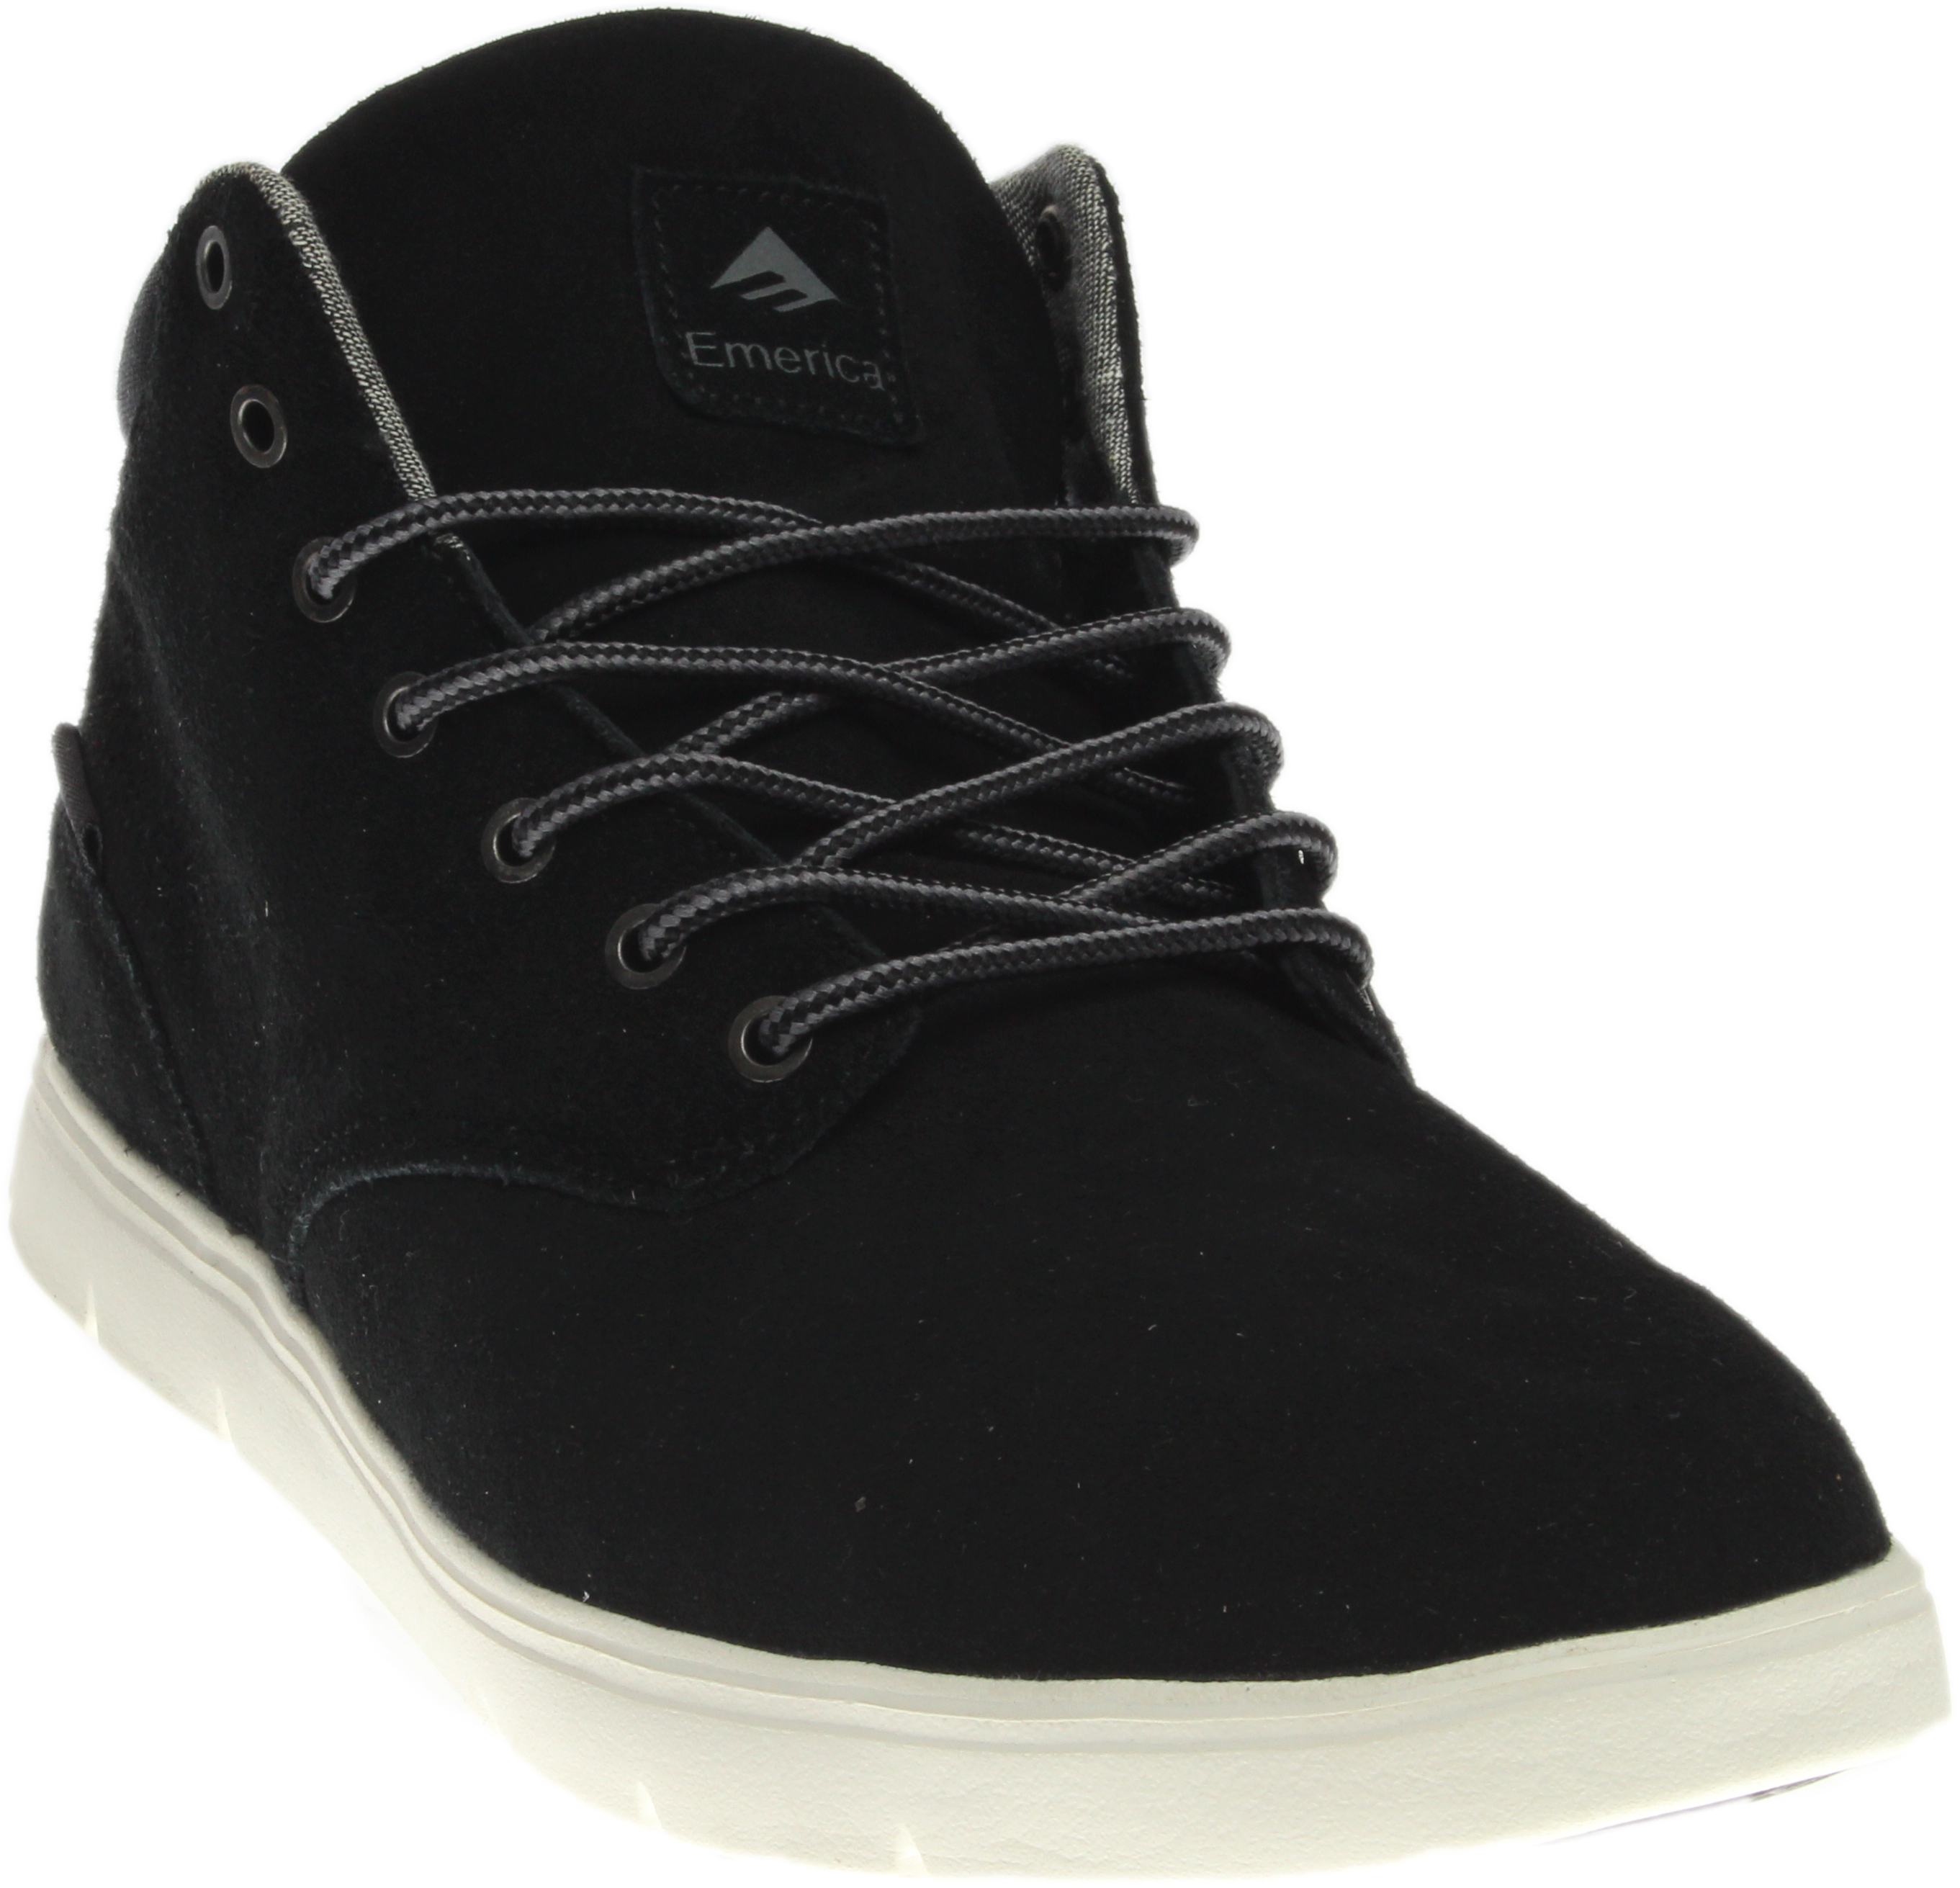 Emerica Wino Cruiser Hlt - Black - Mens